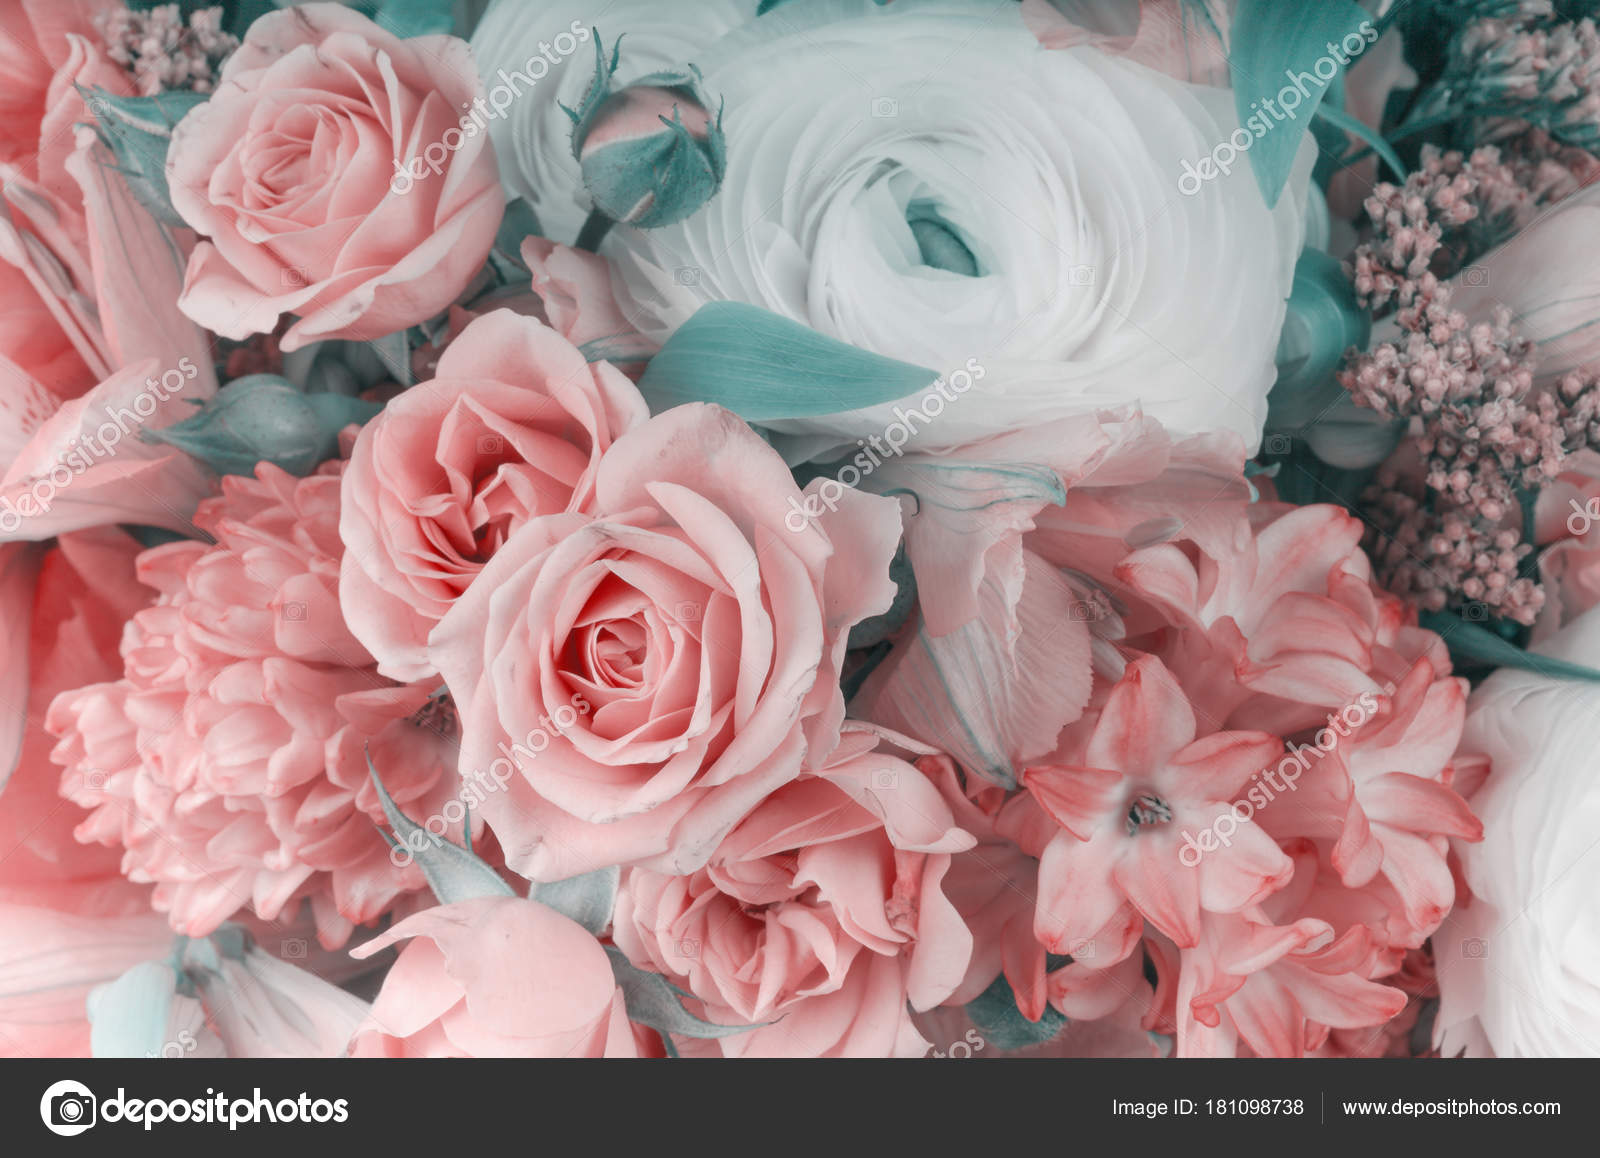 Amazing flower bouquet arrangement close up stock photo amazing flower bouquet arrangement close up in pastel colors photo by escander81 izmirmasajfo